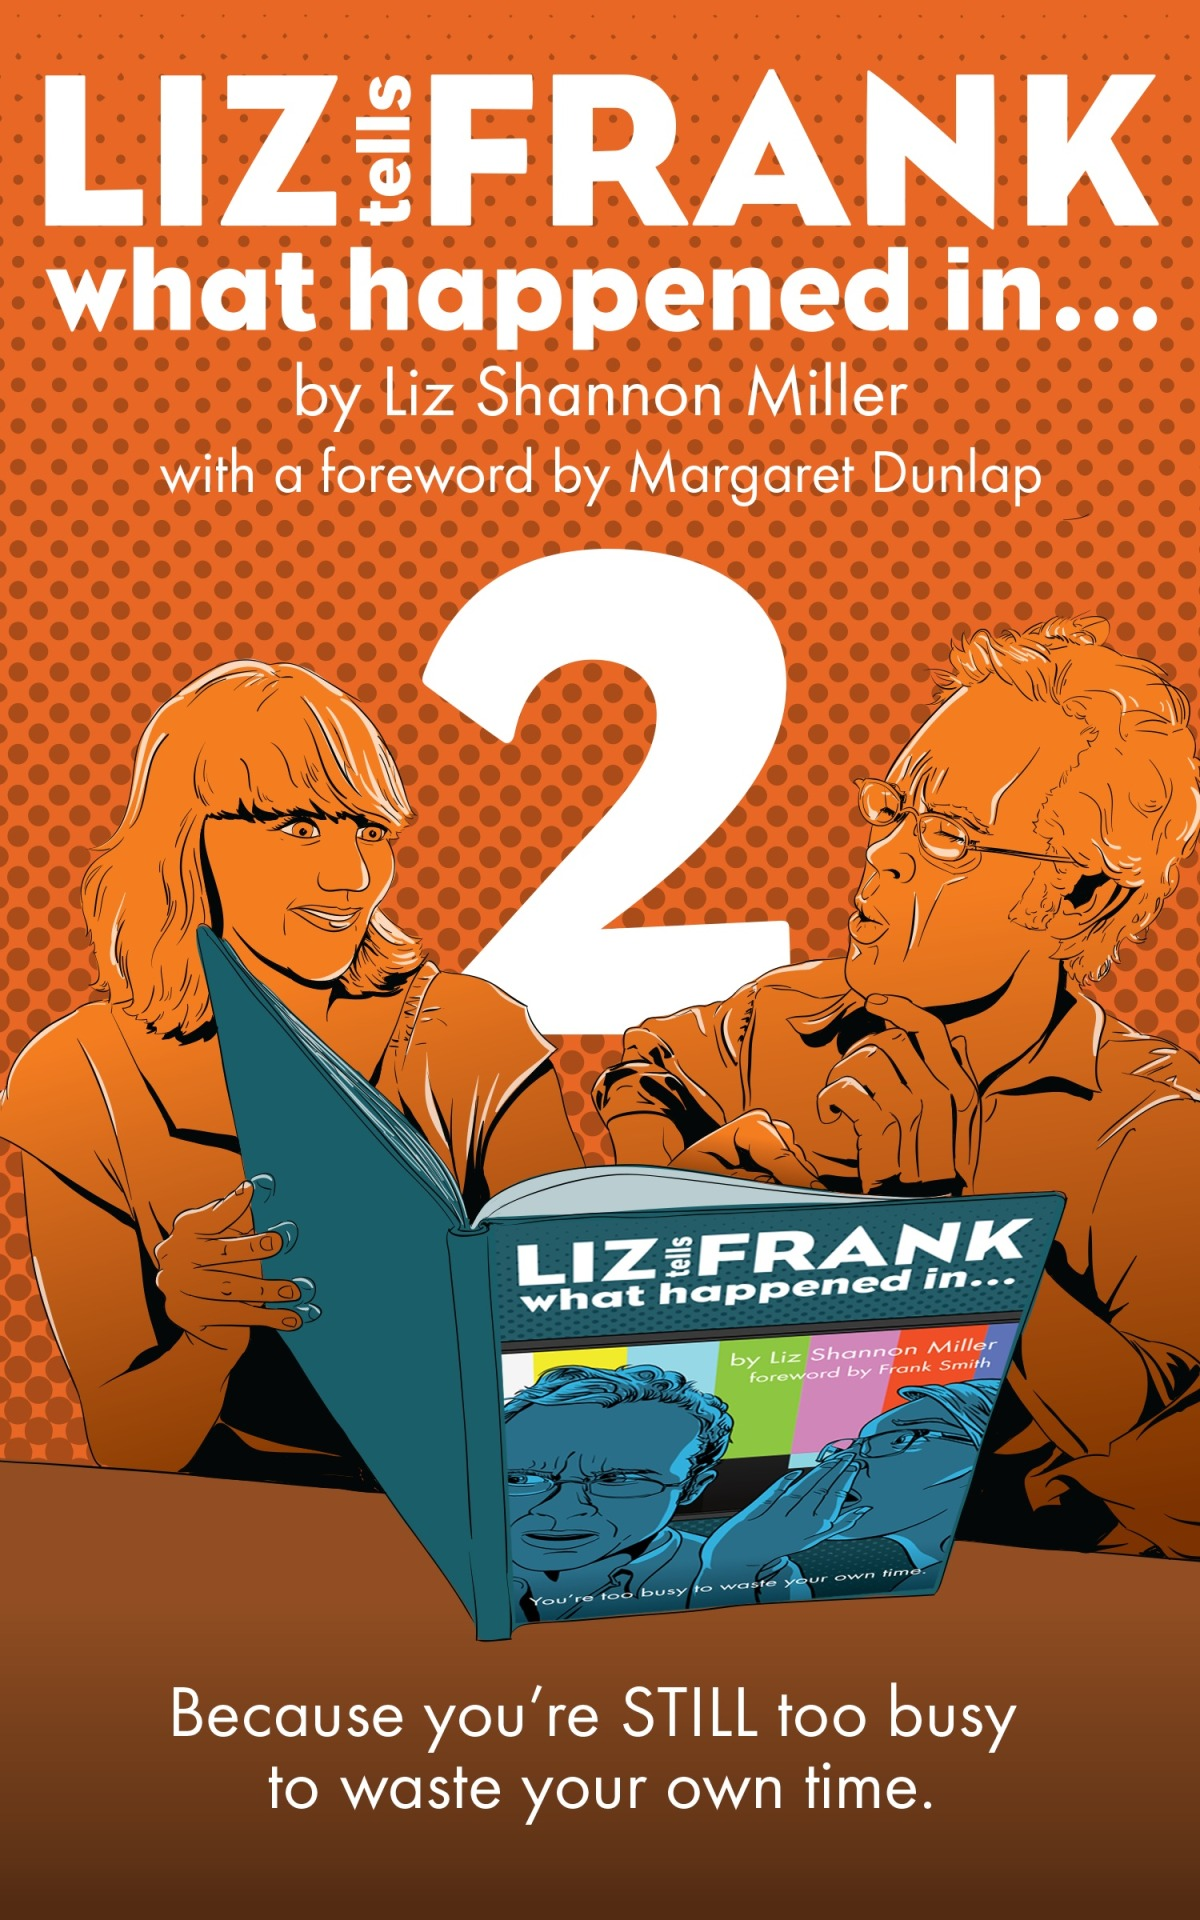 liztellsfrank:  LIZ TELLS FRANK VOLUME 2 IS NOW ON AMAZON DOT COM ISN'T THE COVER LOVELY MAYBE YOU MIGHT BUY A COPY AND/OR TELL OTHER PEOPLE THAT THEY CAN ALSO BUY A COPY?   Book exclusive entries: The West Wing, Mass Effect 3, I Hope They Serve Beer In Hell, The Courtship of Princess Leia, and Dragon Age: Origins (sorta).   Foreword by Margaret Dunlap! Cover by Asa Shumskas-Tait!  PLEASE AND THANK YOU.